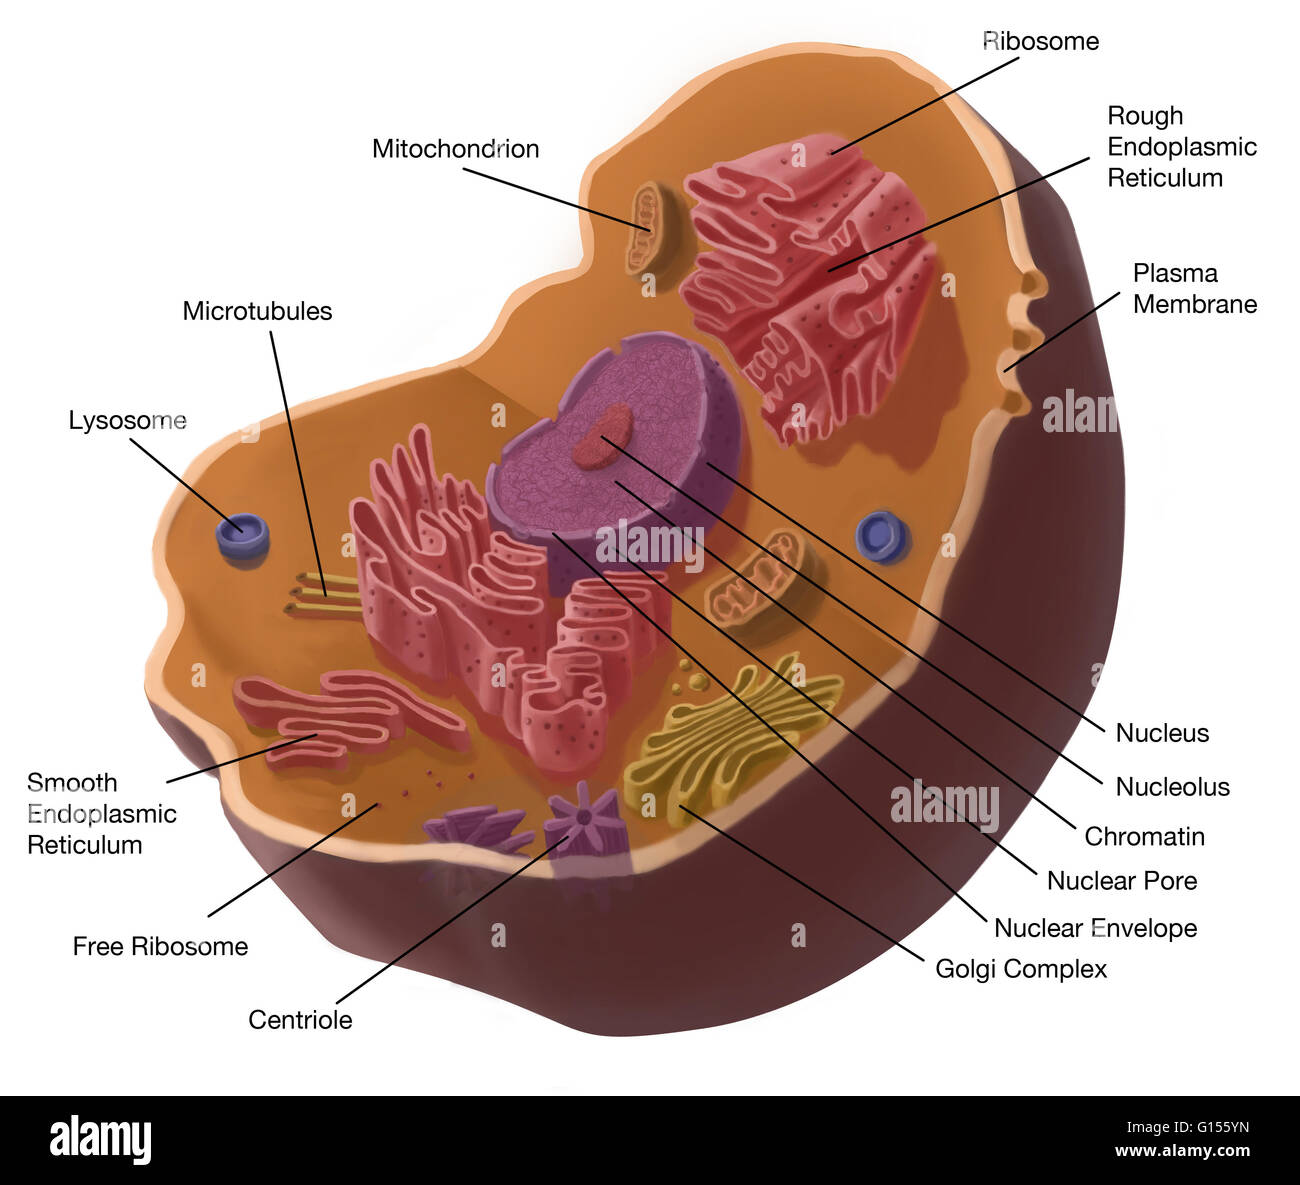 Illustration of animal cell the cell has a nucleus in its center illustration of animal cell the cell has a nucleus in its center that contains chromatin constituted of dna and nucleole composed of rna and proteins ccuart Gallery